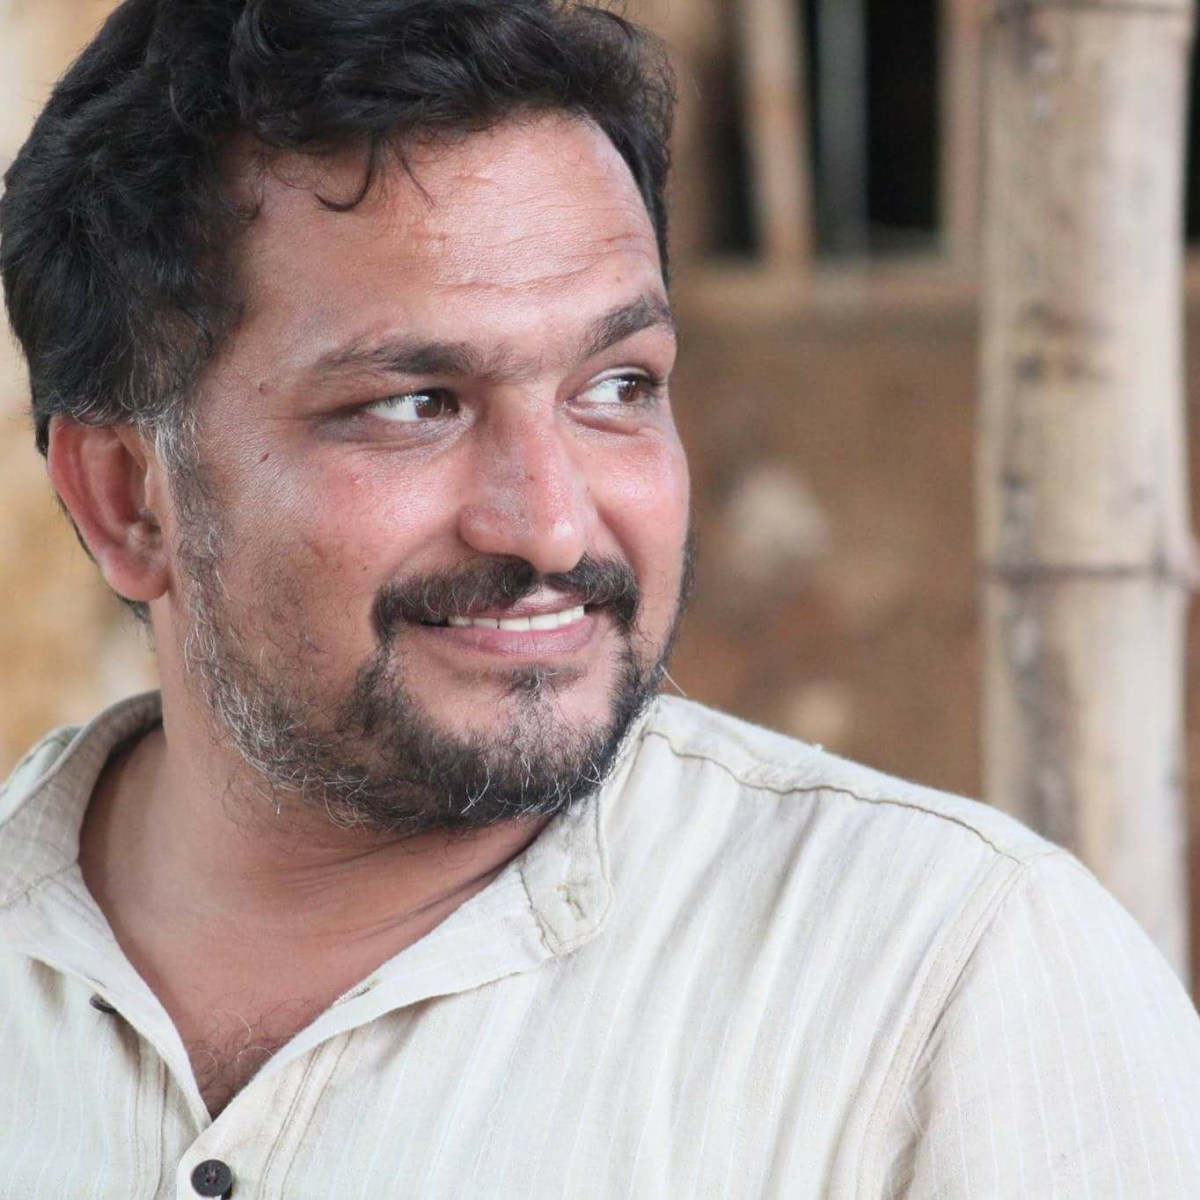 Enviornmental Activist Piyush Manush arrested, he was against expansion of Salem airport